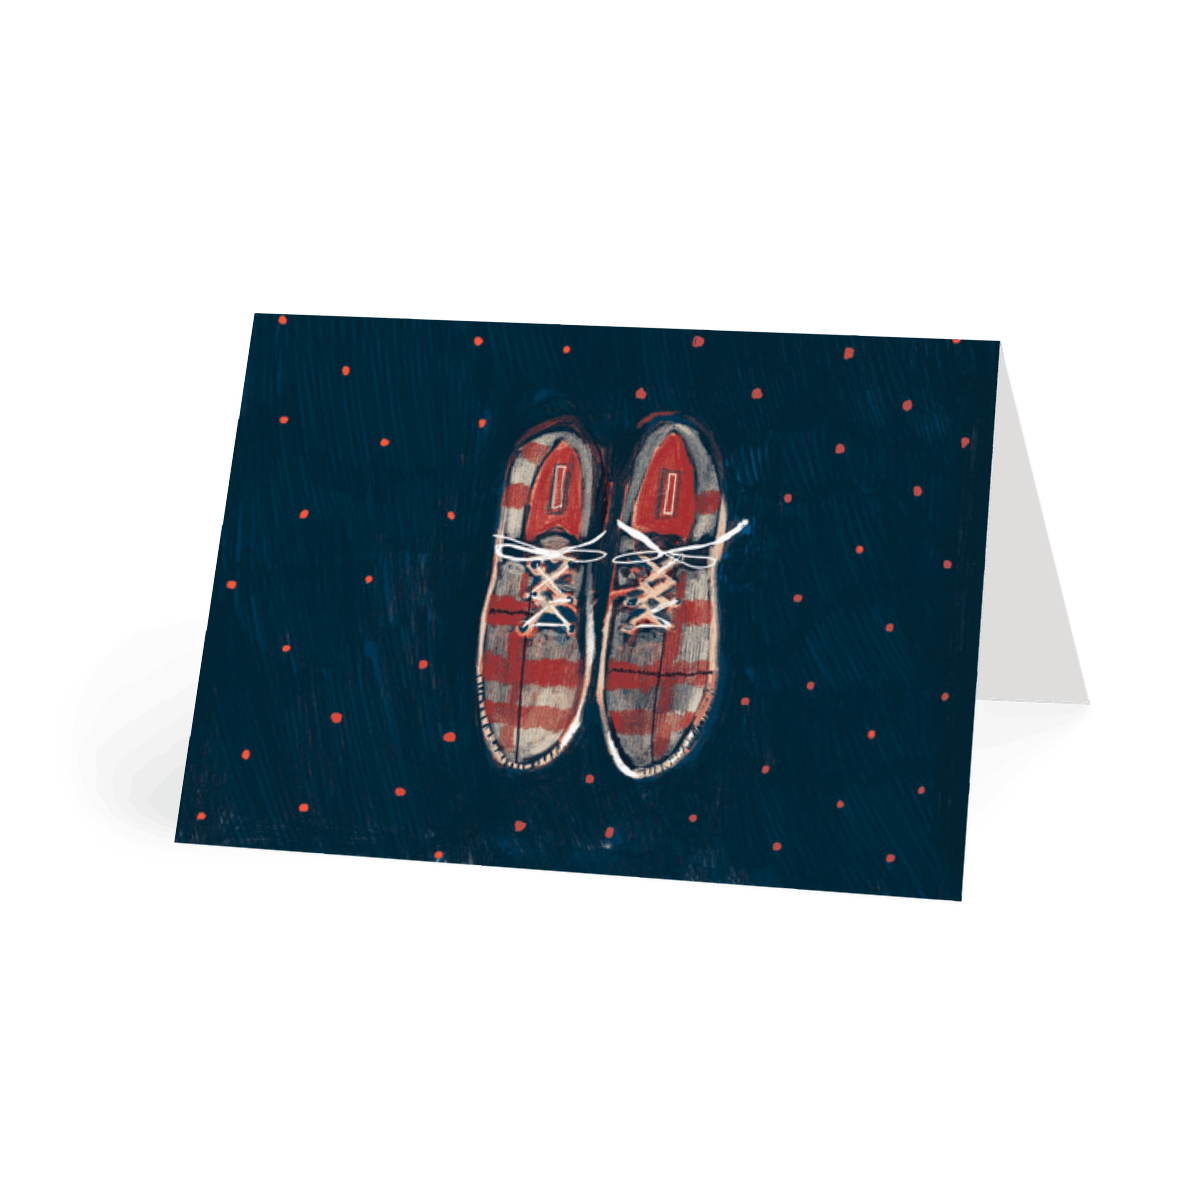 Https%3a%2f%2fwww.papier.com%2fproduct image%2f29200%2f14%2fher shoes 7333 front 1507744671.png?ixlib=rb 1.1